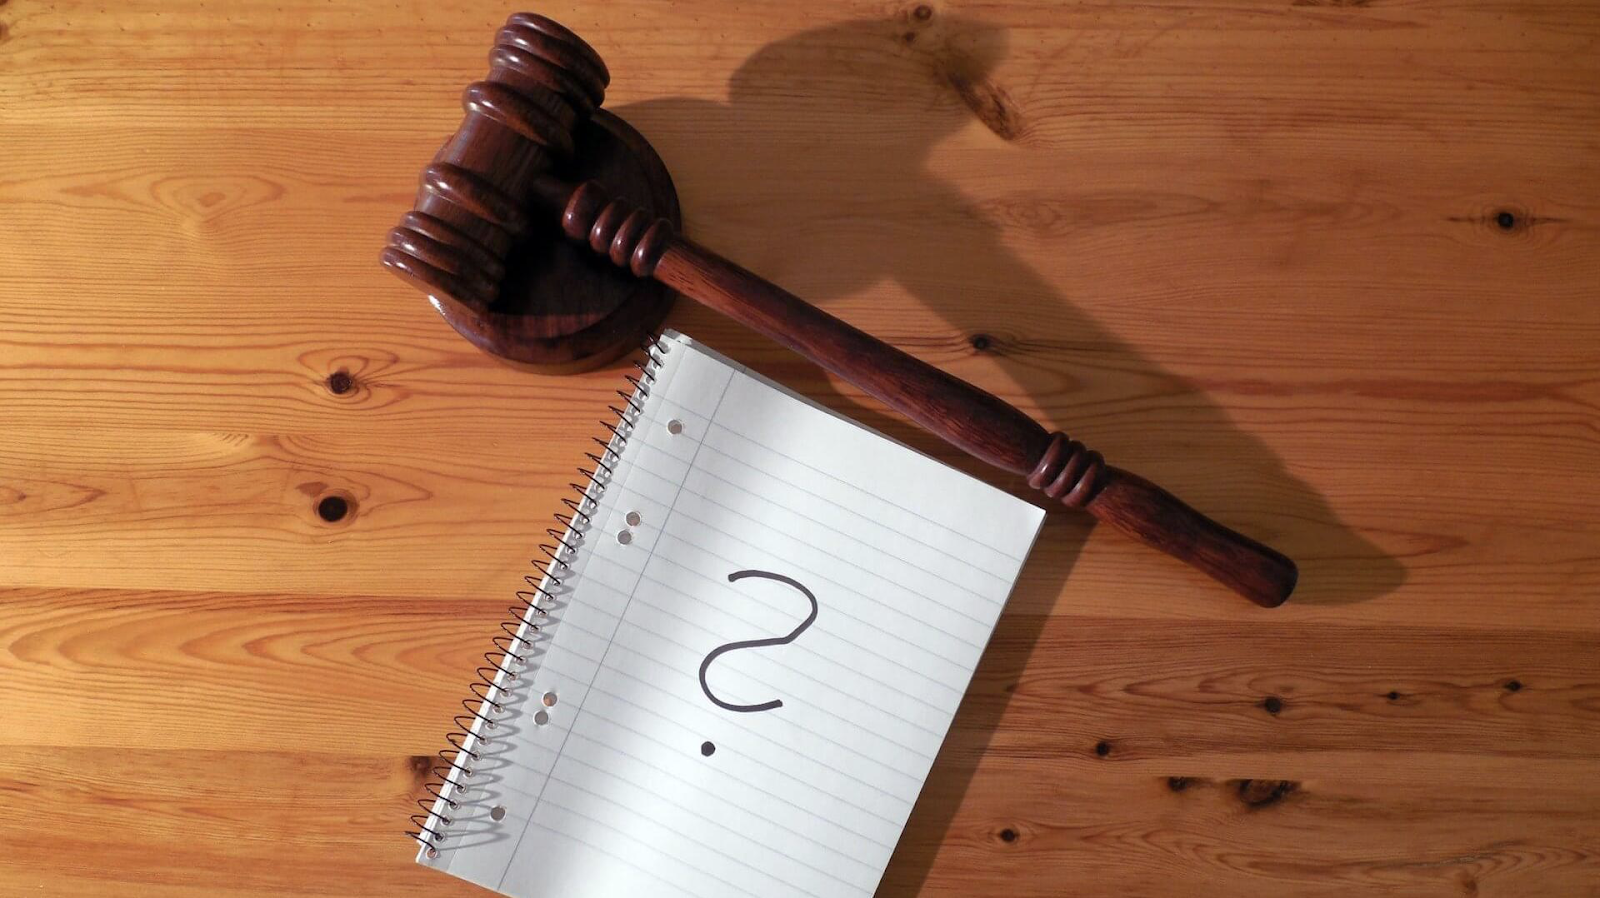 Notebook with question mark about unresolved case and a wooden gavel on the wooden table